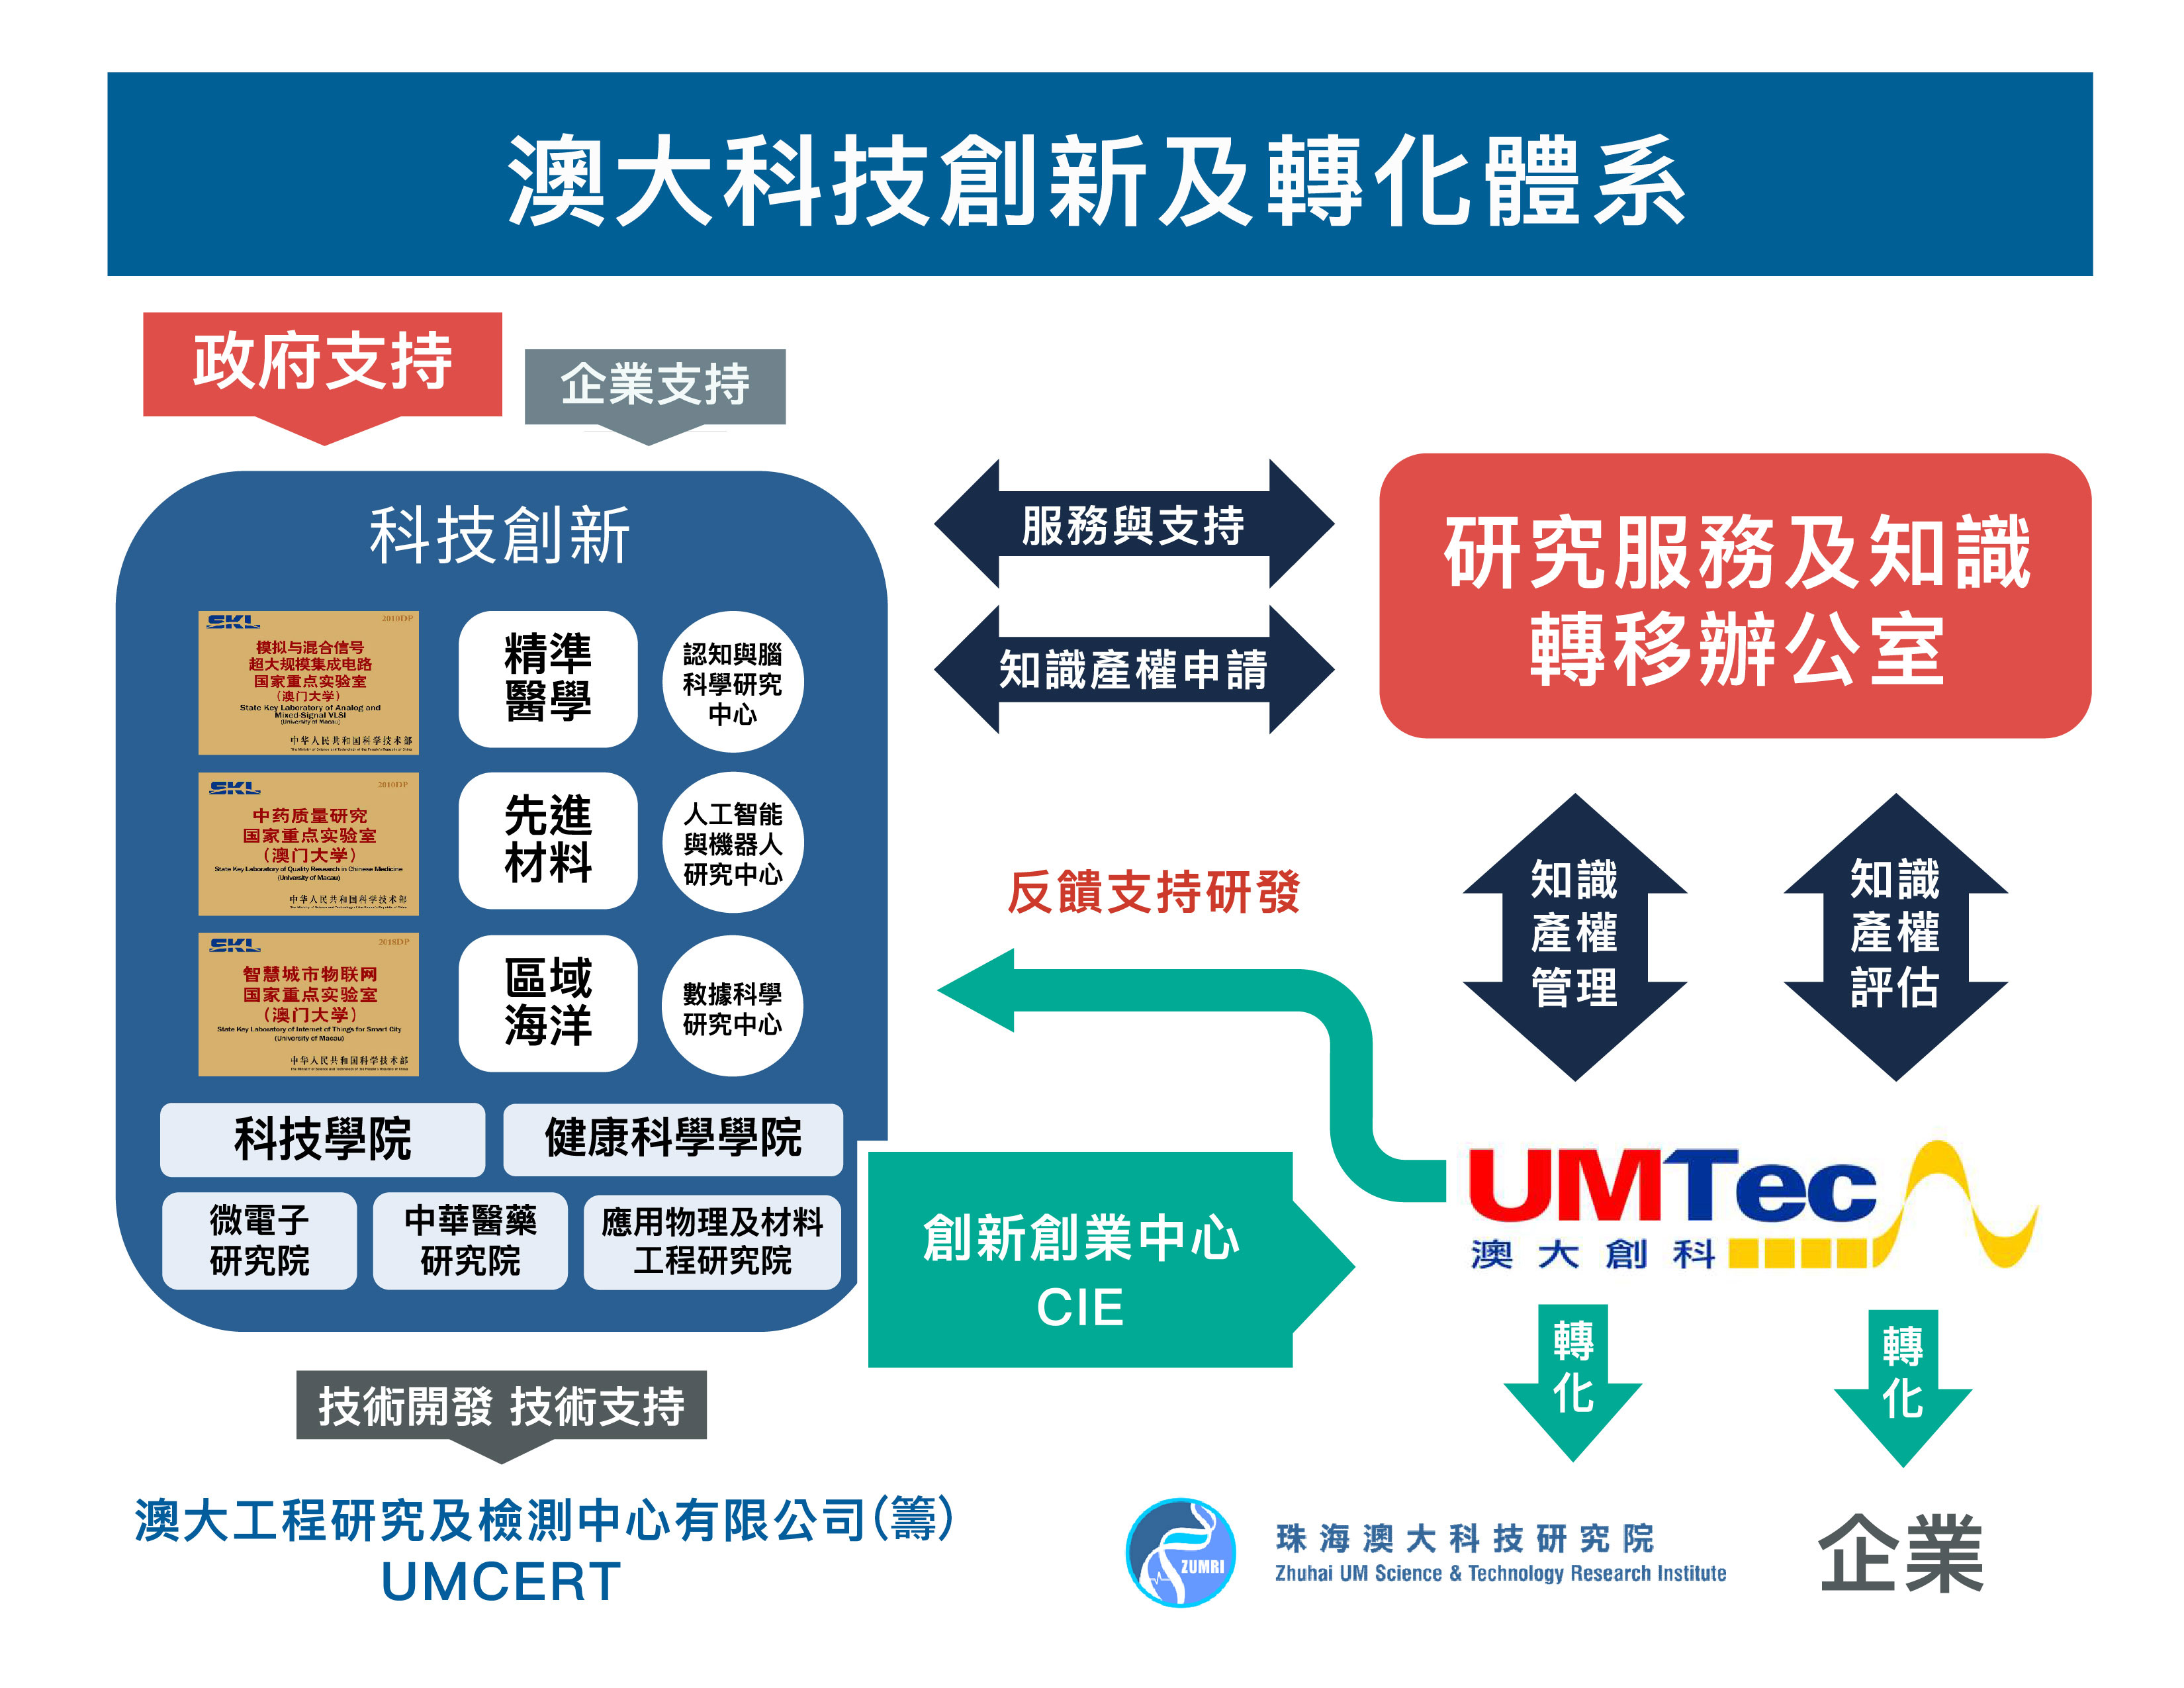 UM's system for technological innovation and commercialisation of research results.